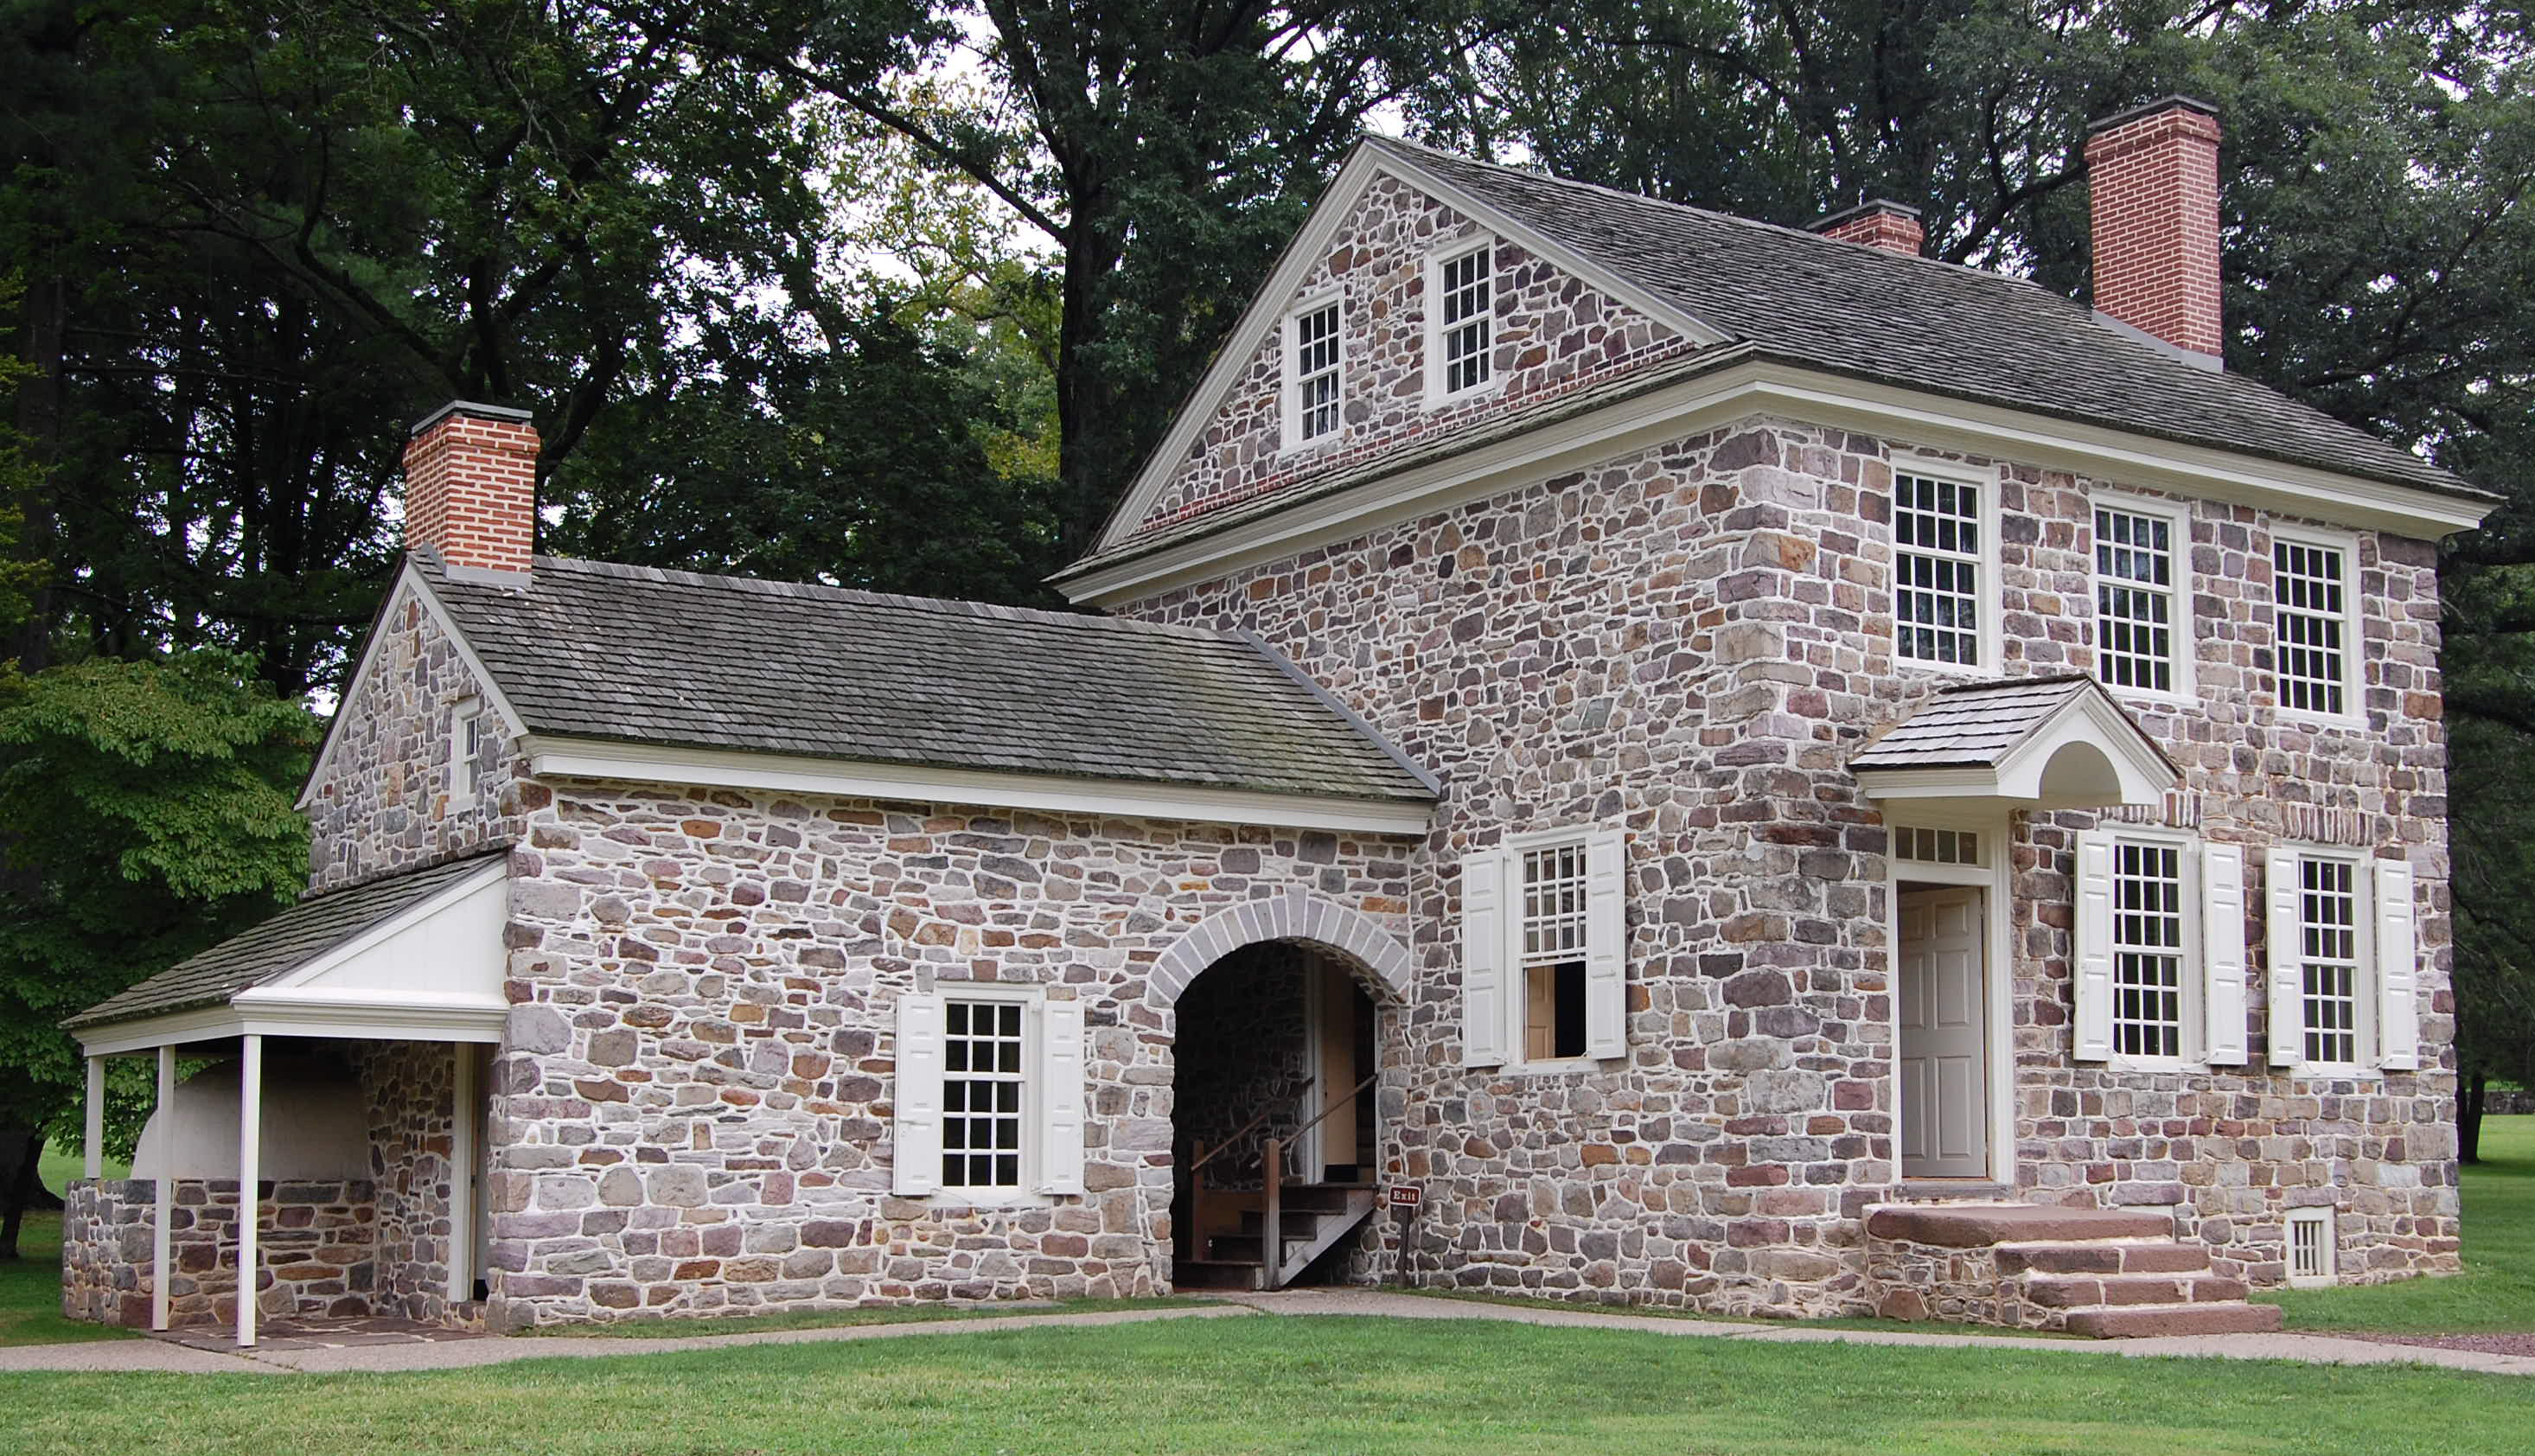 Washington made his headquarters in the Isaac Potts House at Valley Forge. Photo taken on August 22, 2009.